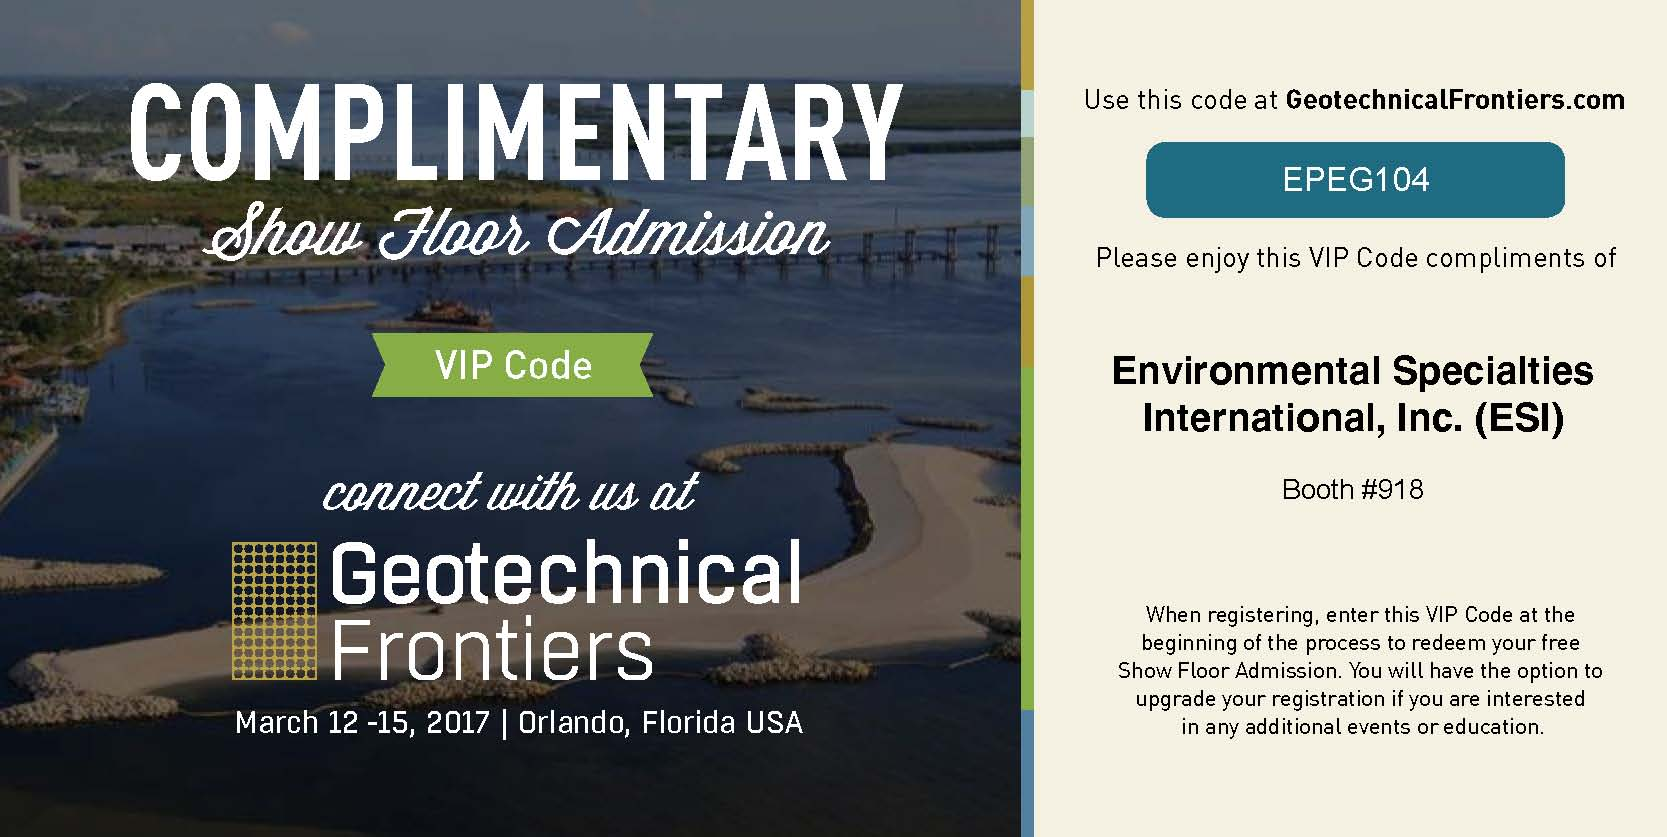 Geotechnical Frontiers 2017